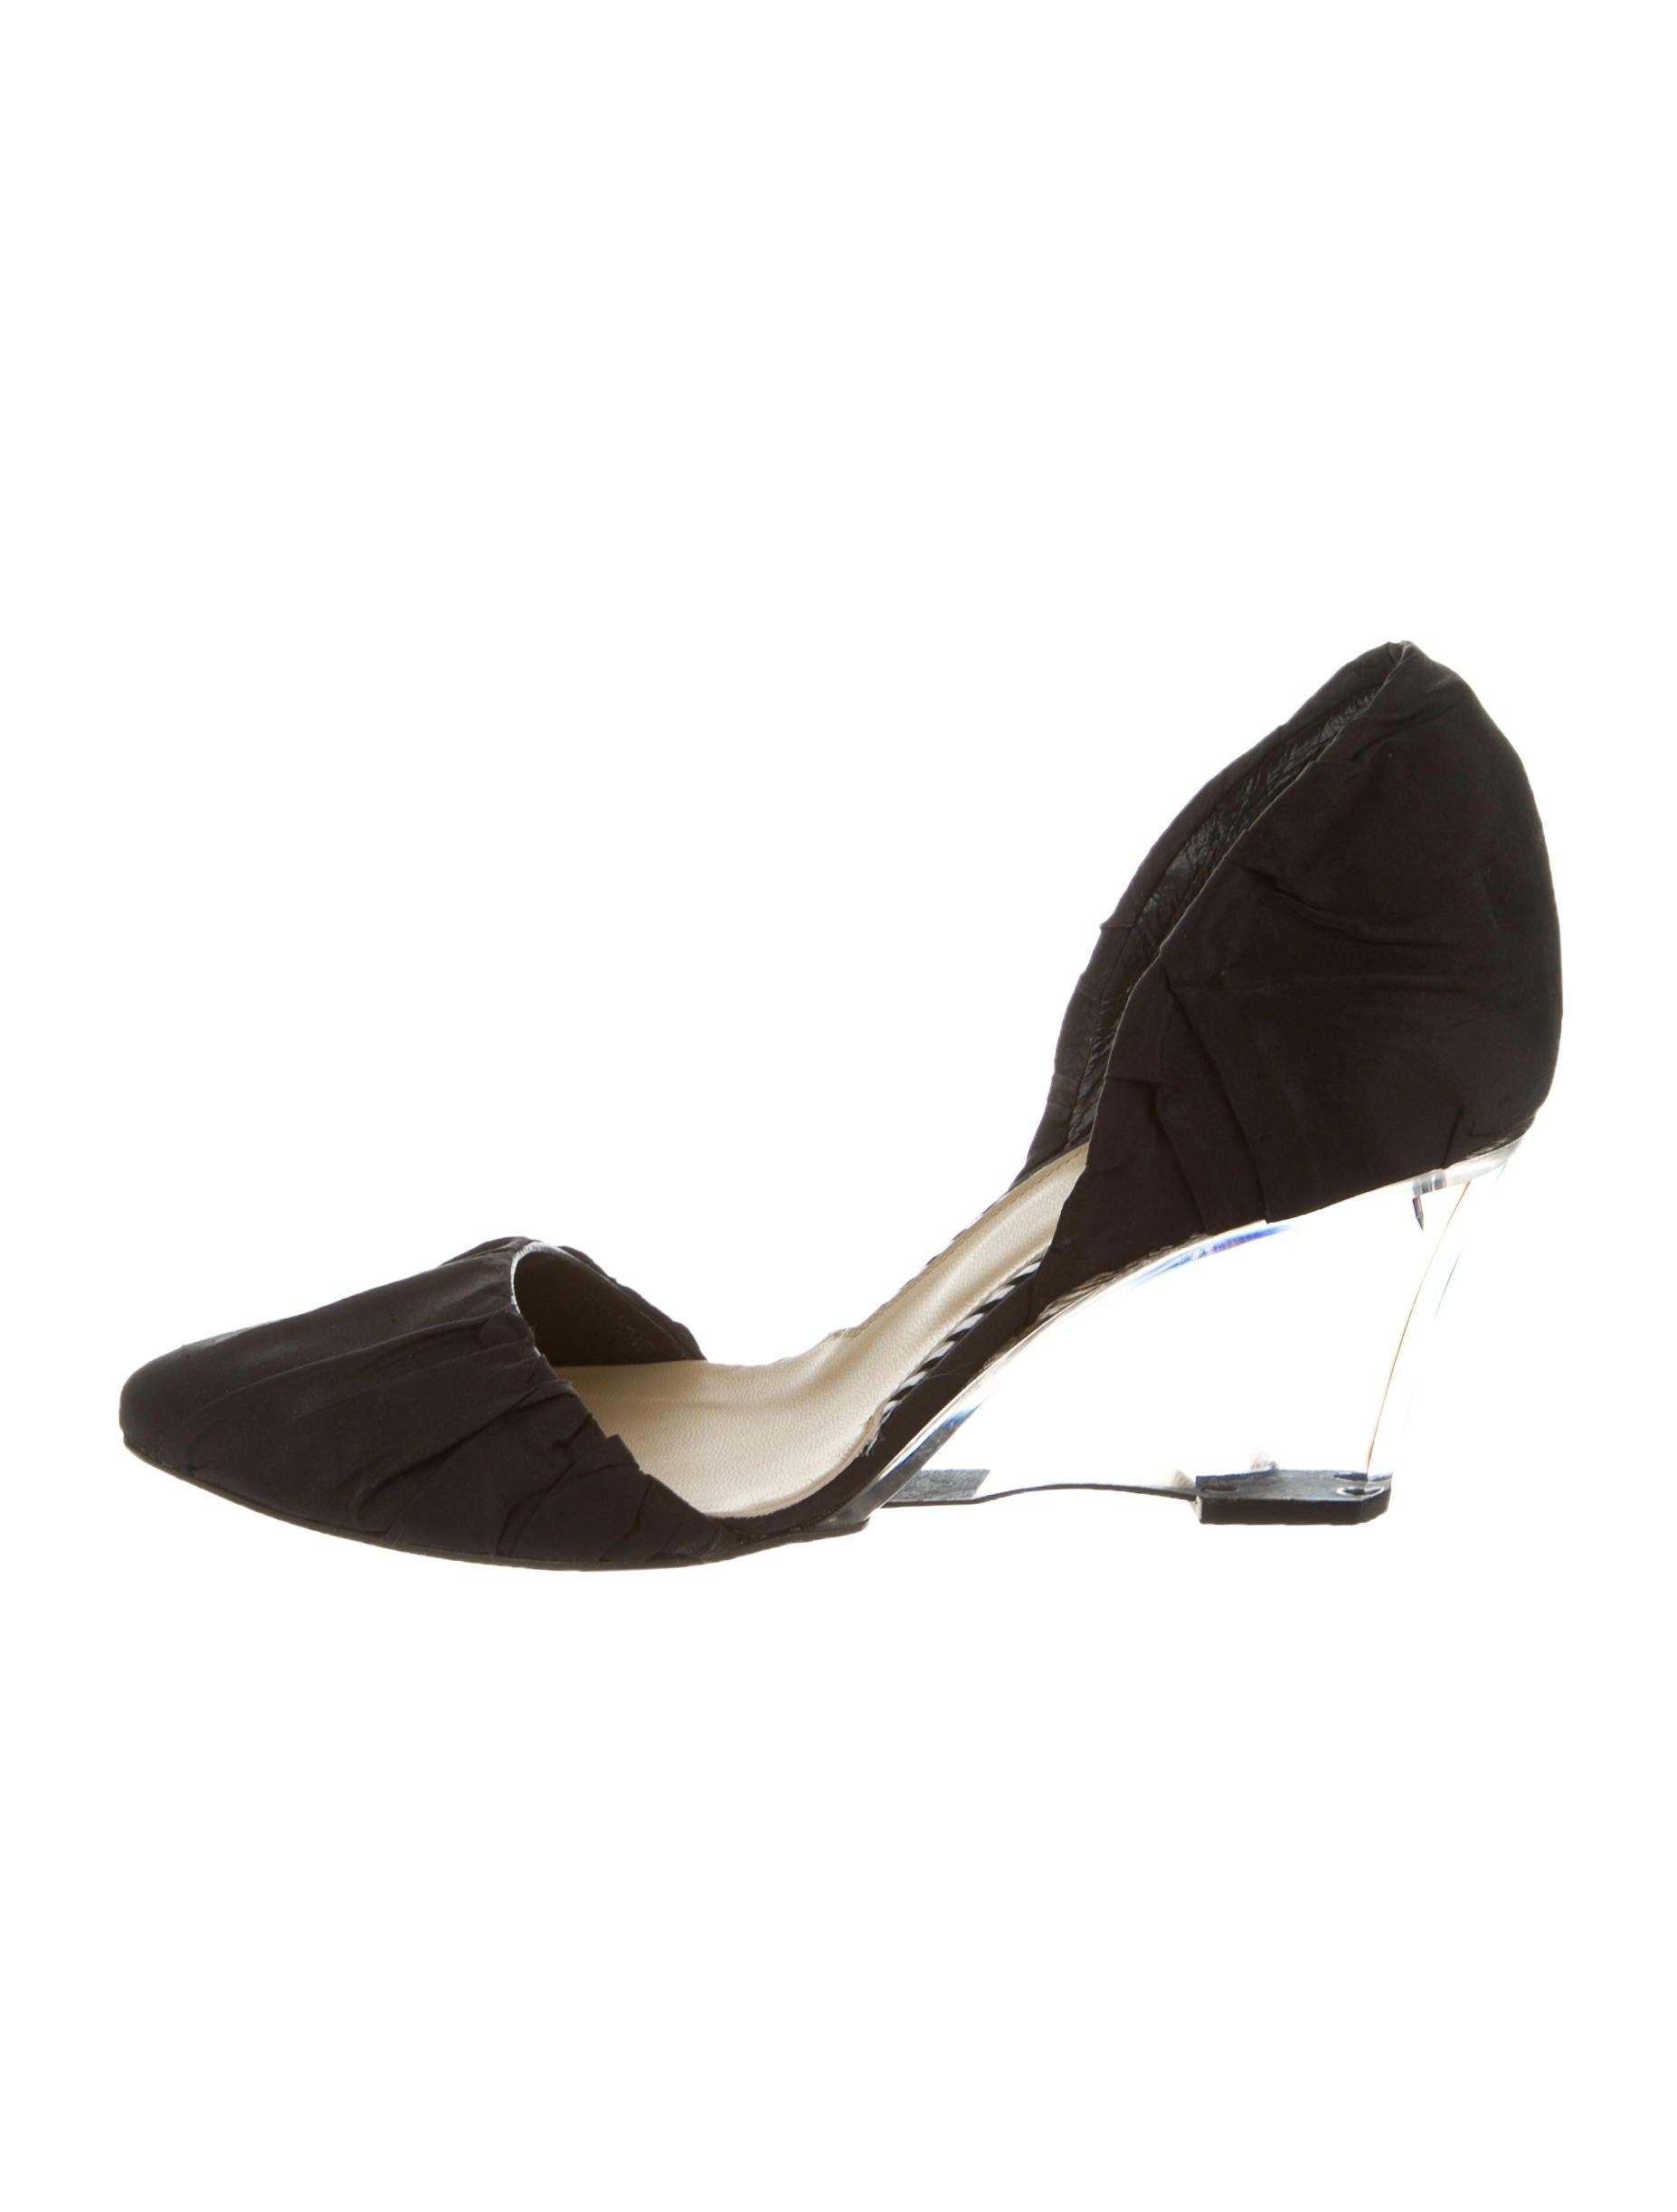 toga pointed toe d orsay wedges shoes wt420147 the